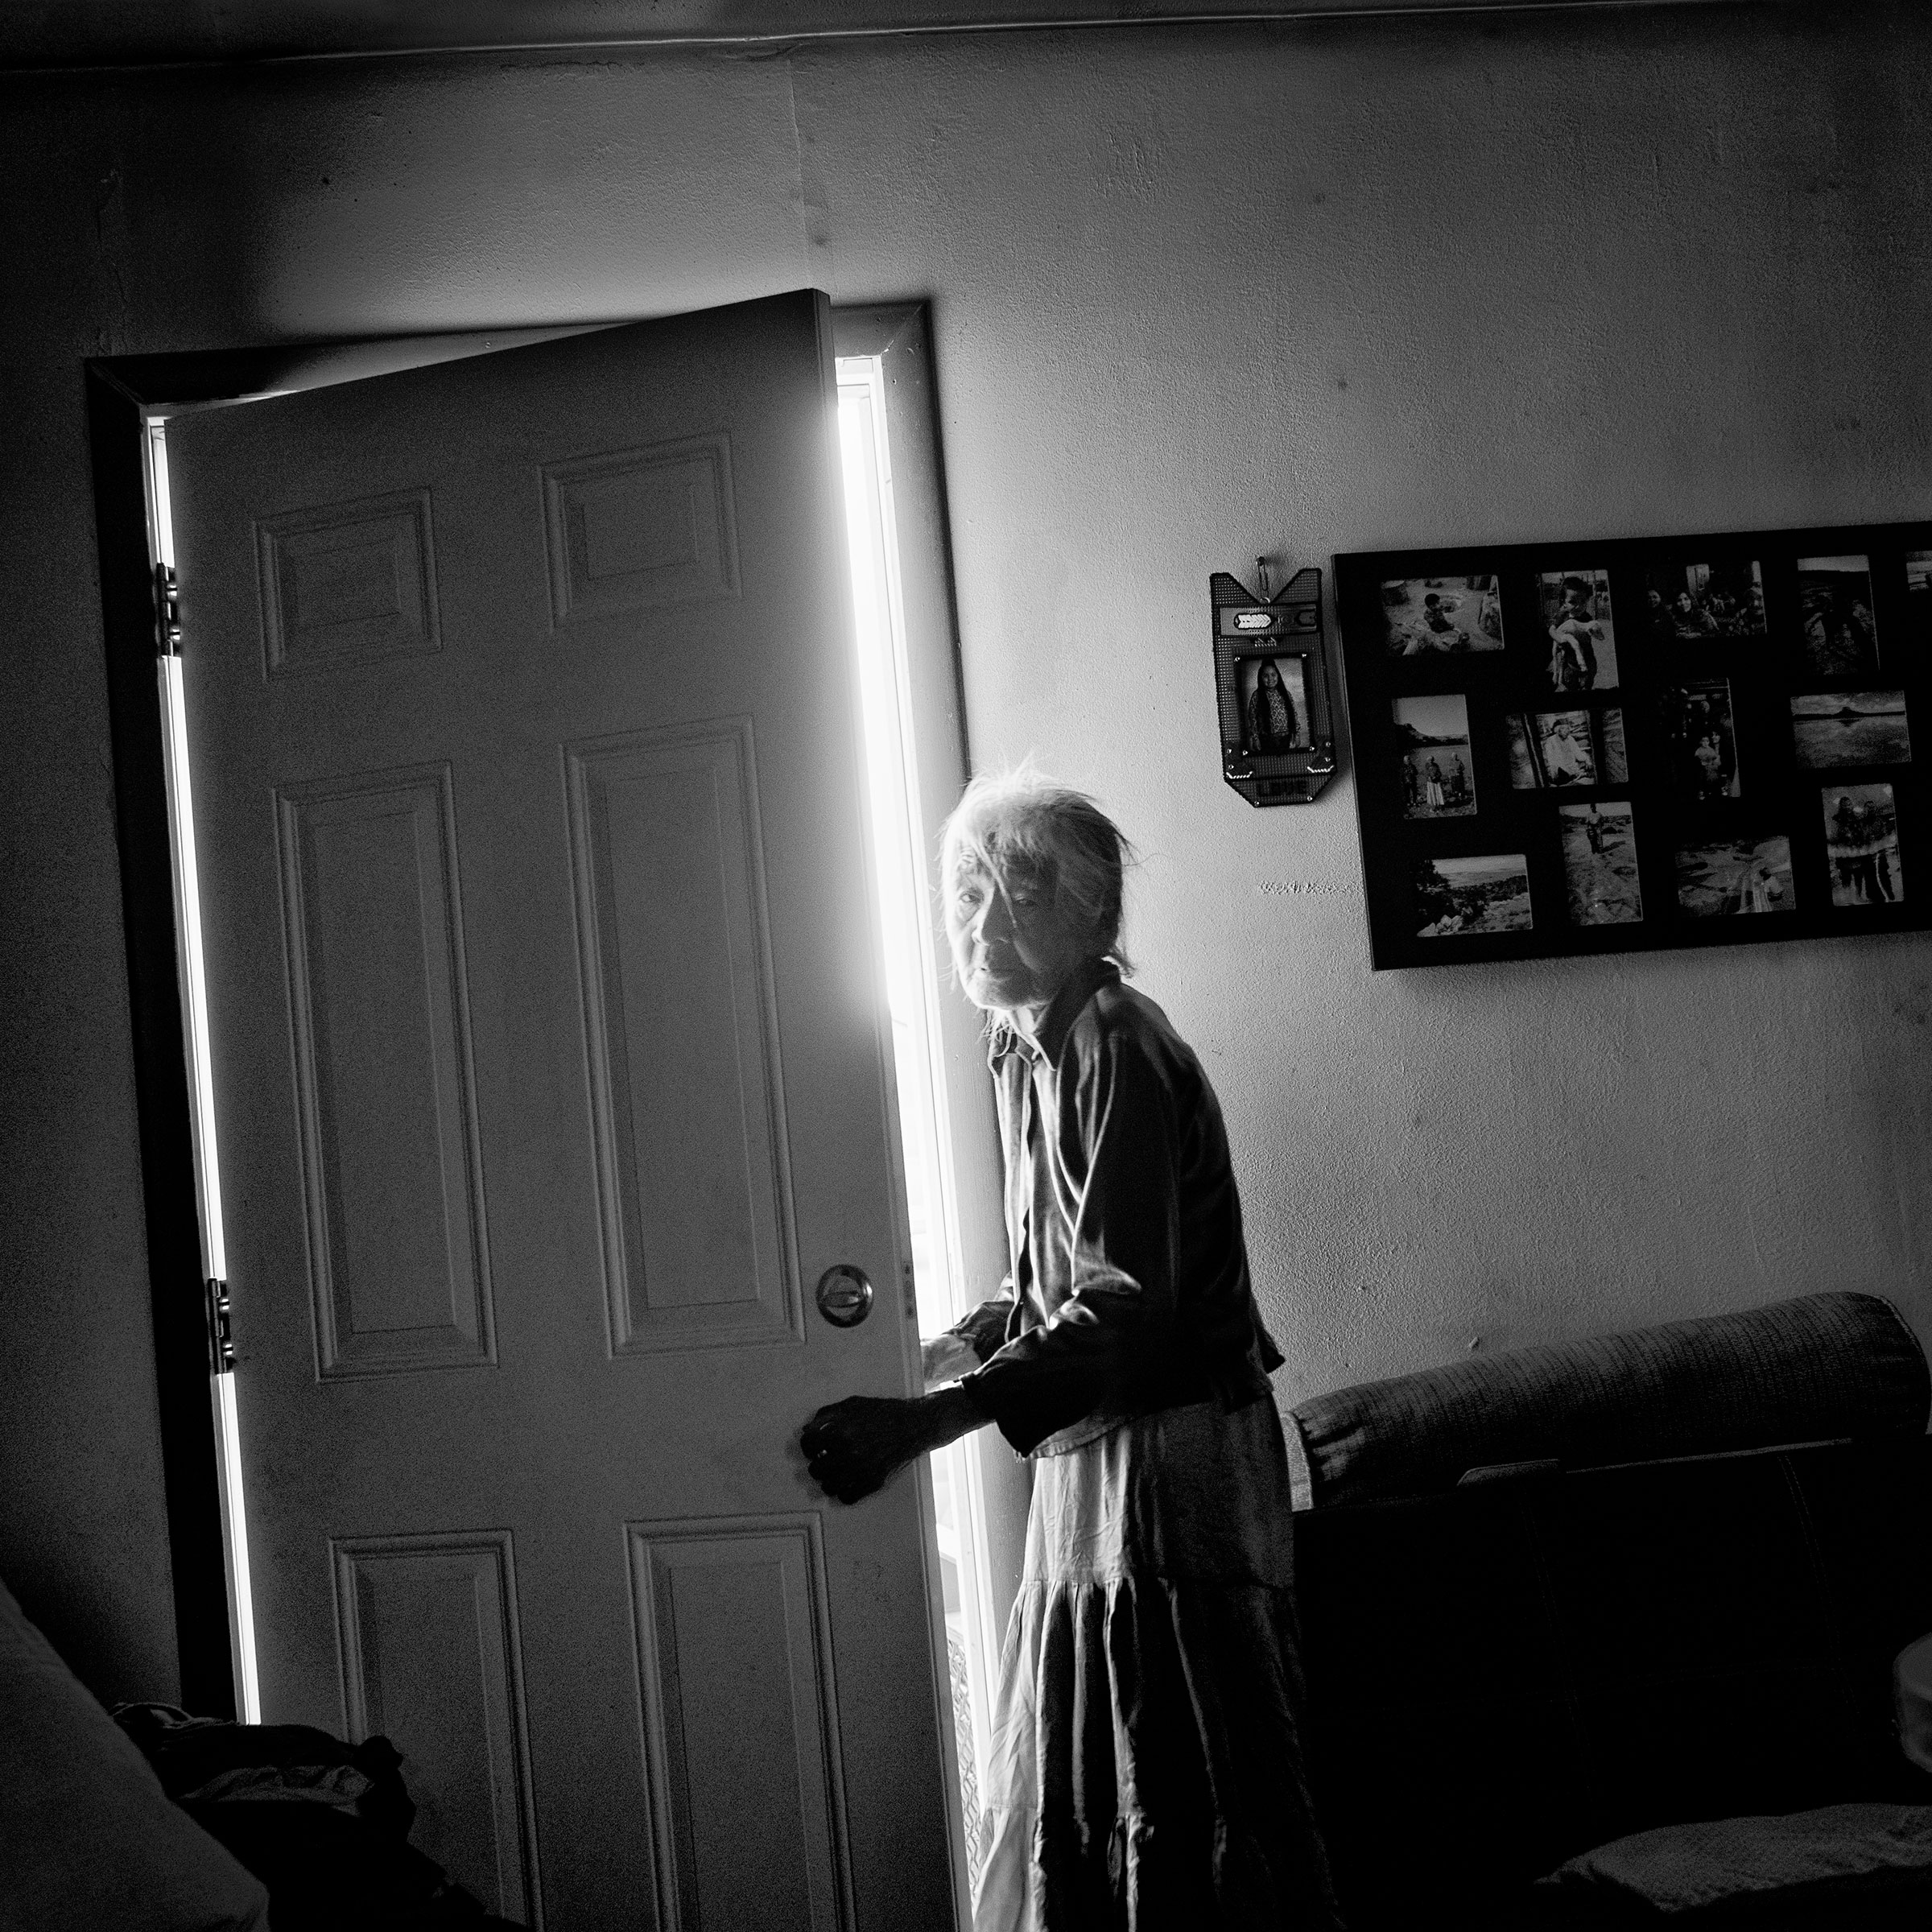 Nellie Yellowhorse, 90, at her family's ranch home in the Navajo Nation; she lives with her two elderly sisters in the house, which has no running water.  Tapped Out,  March 2 issue.